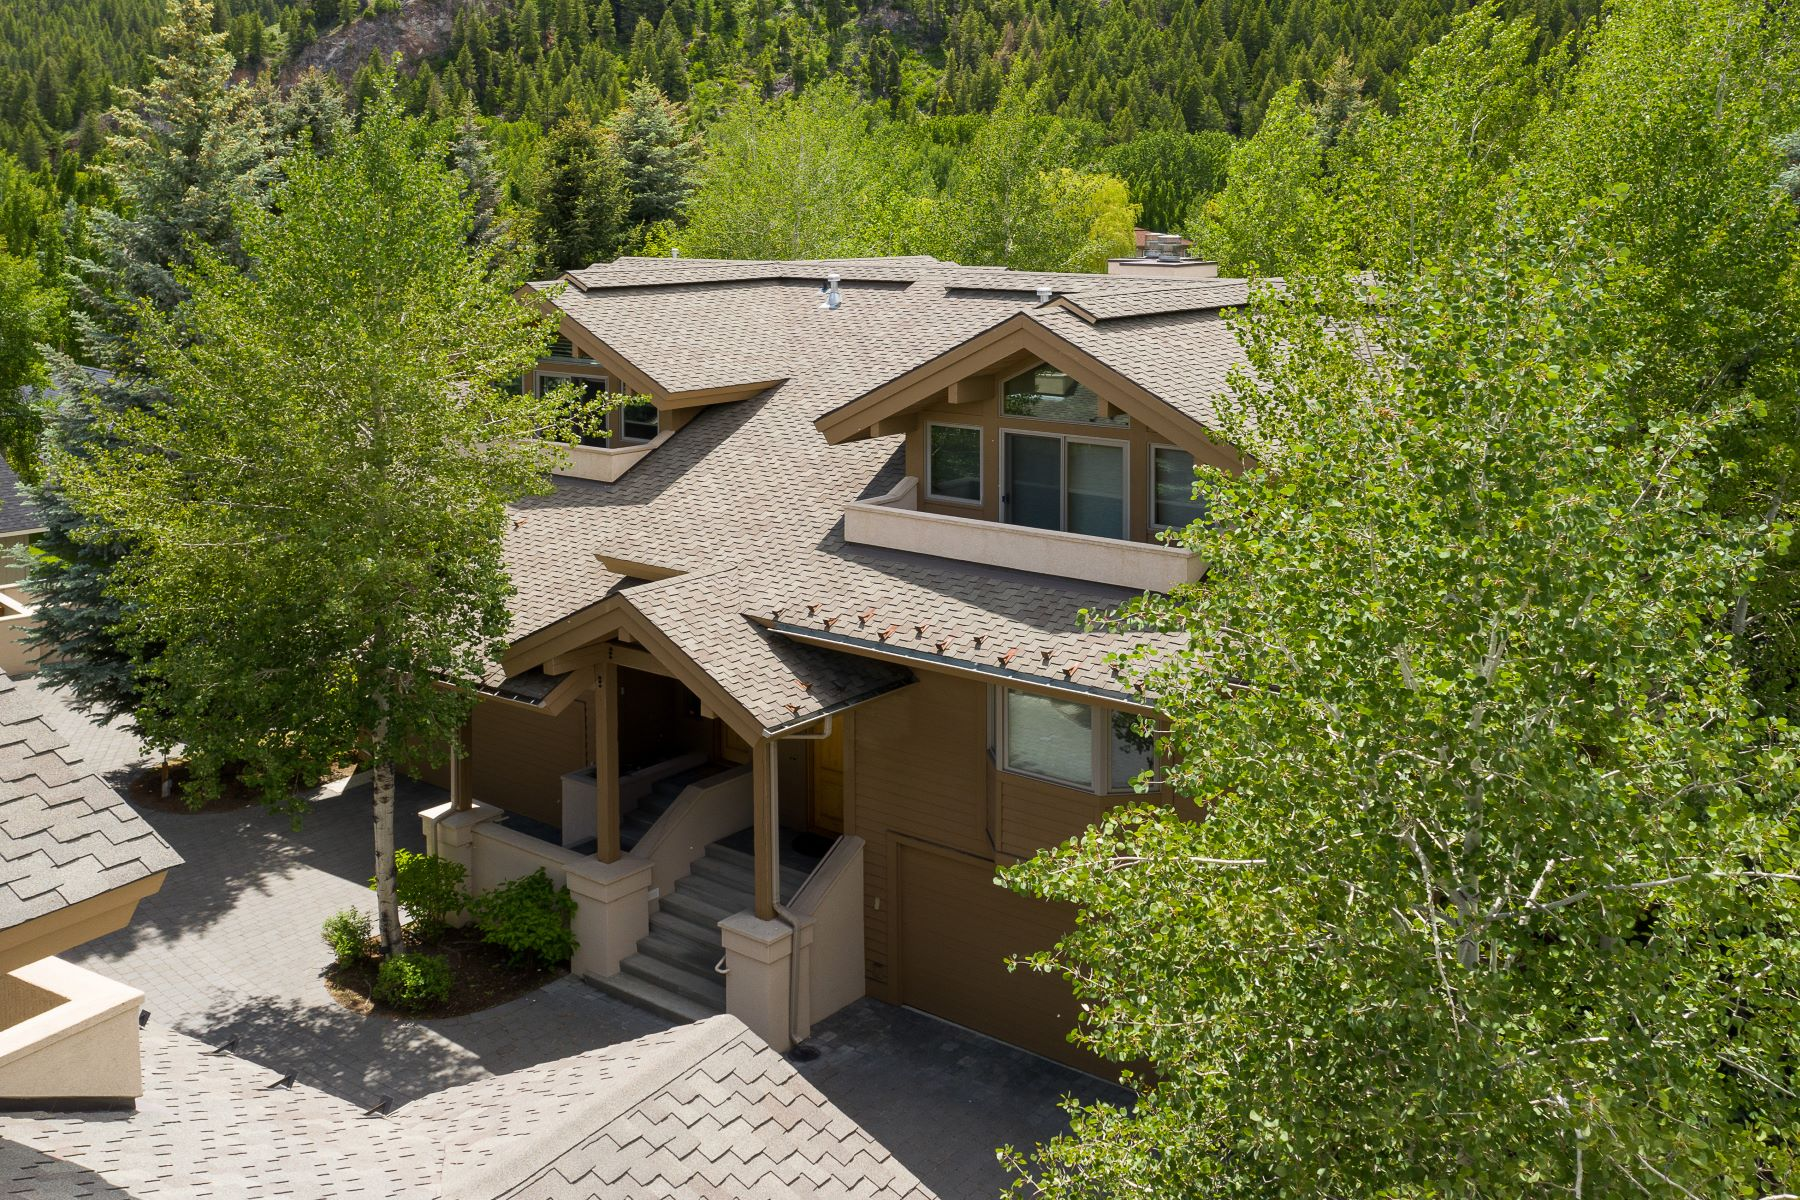 townhouses للـ Sale في Iconic West Ketchum Townhome 161 Bird Drive, Unit A, Ketchum, Idaho 83340 United States